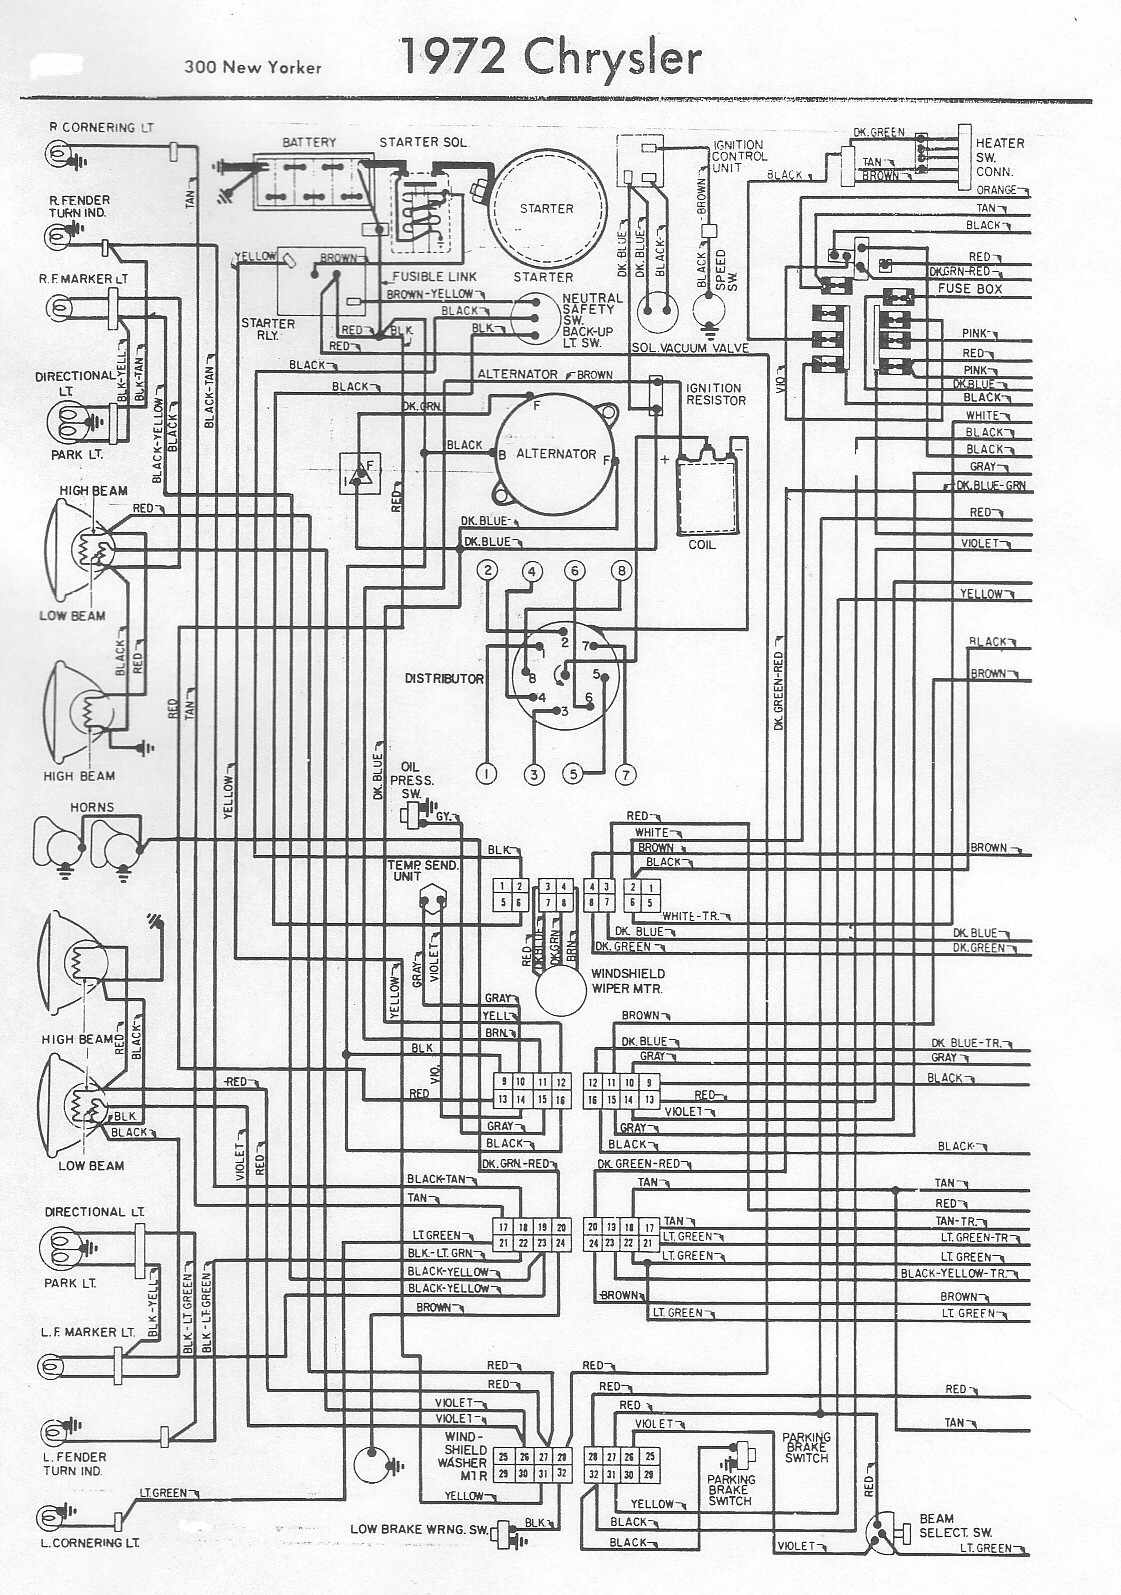 hight resolution of chrysler concorde wiring diagrams 1955 dodge wiring 1995 chrysler concorde wiring diagram 1997 chrysler concorde wiring diagram